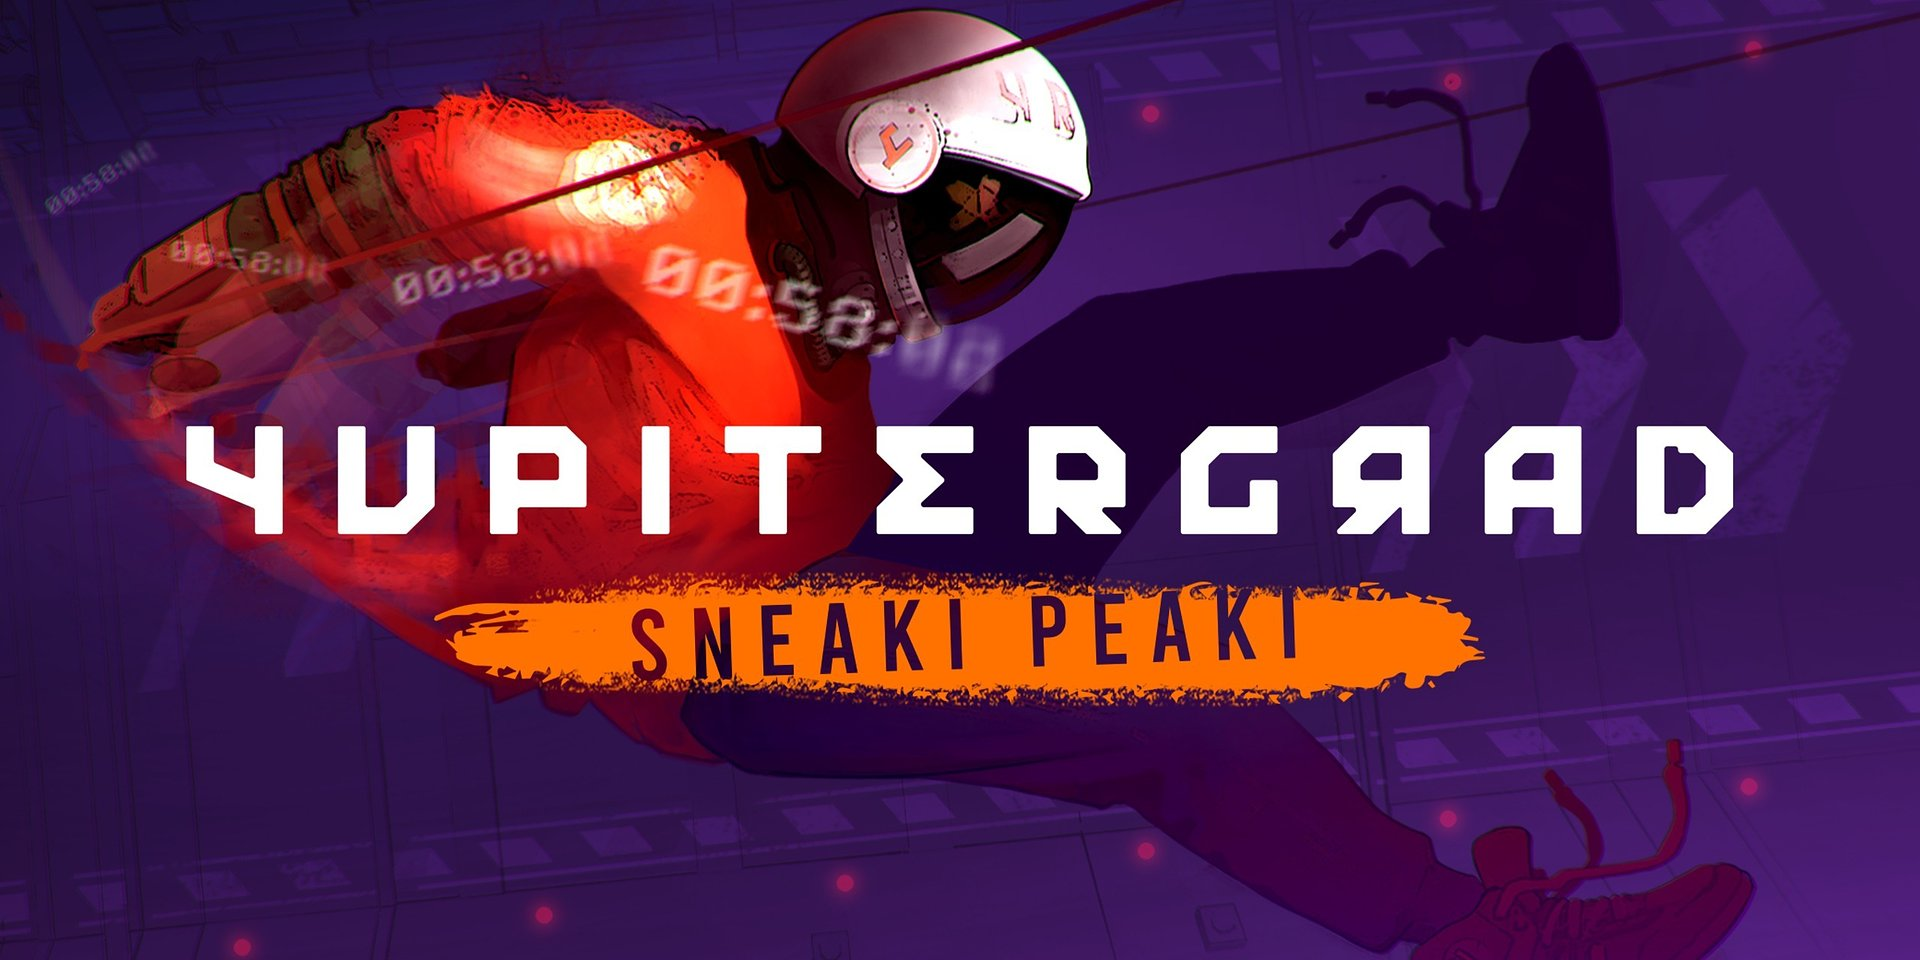 Yupitergrad gets new updates with additional Time Attack levels and a free version called Sneaki Peaki!